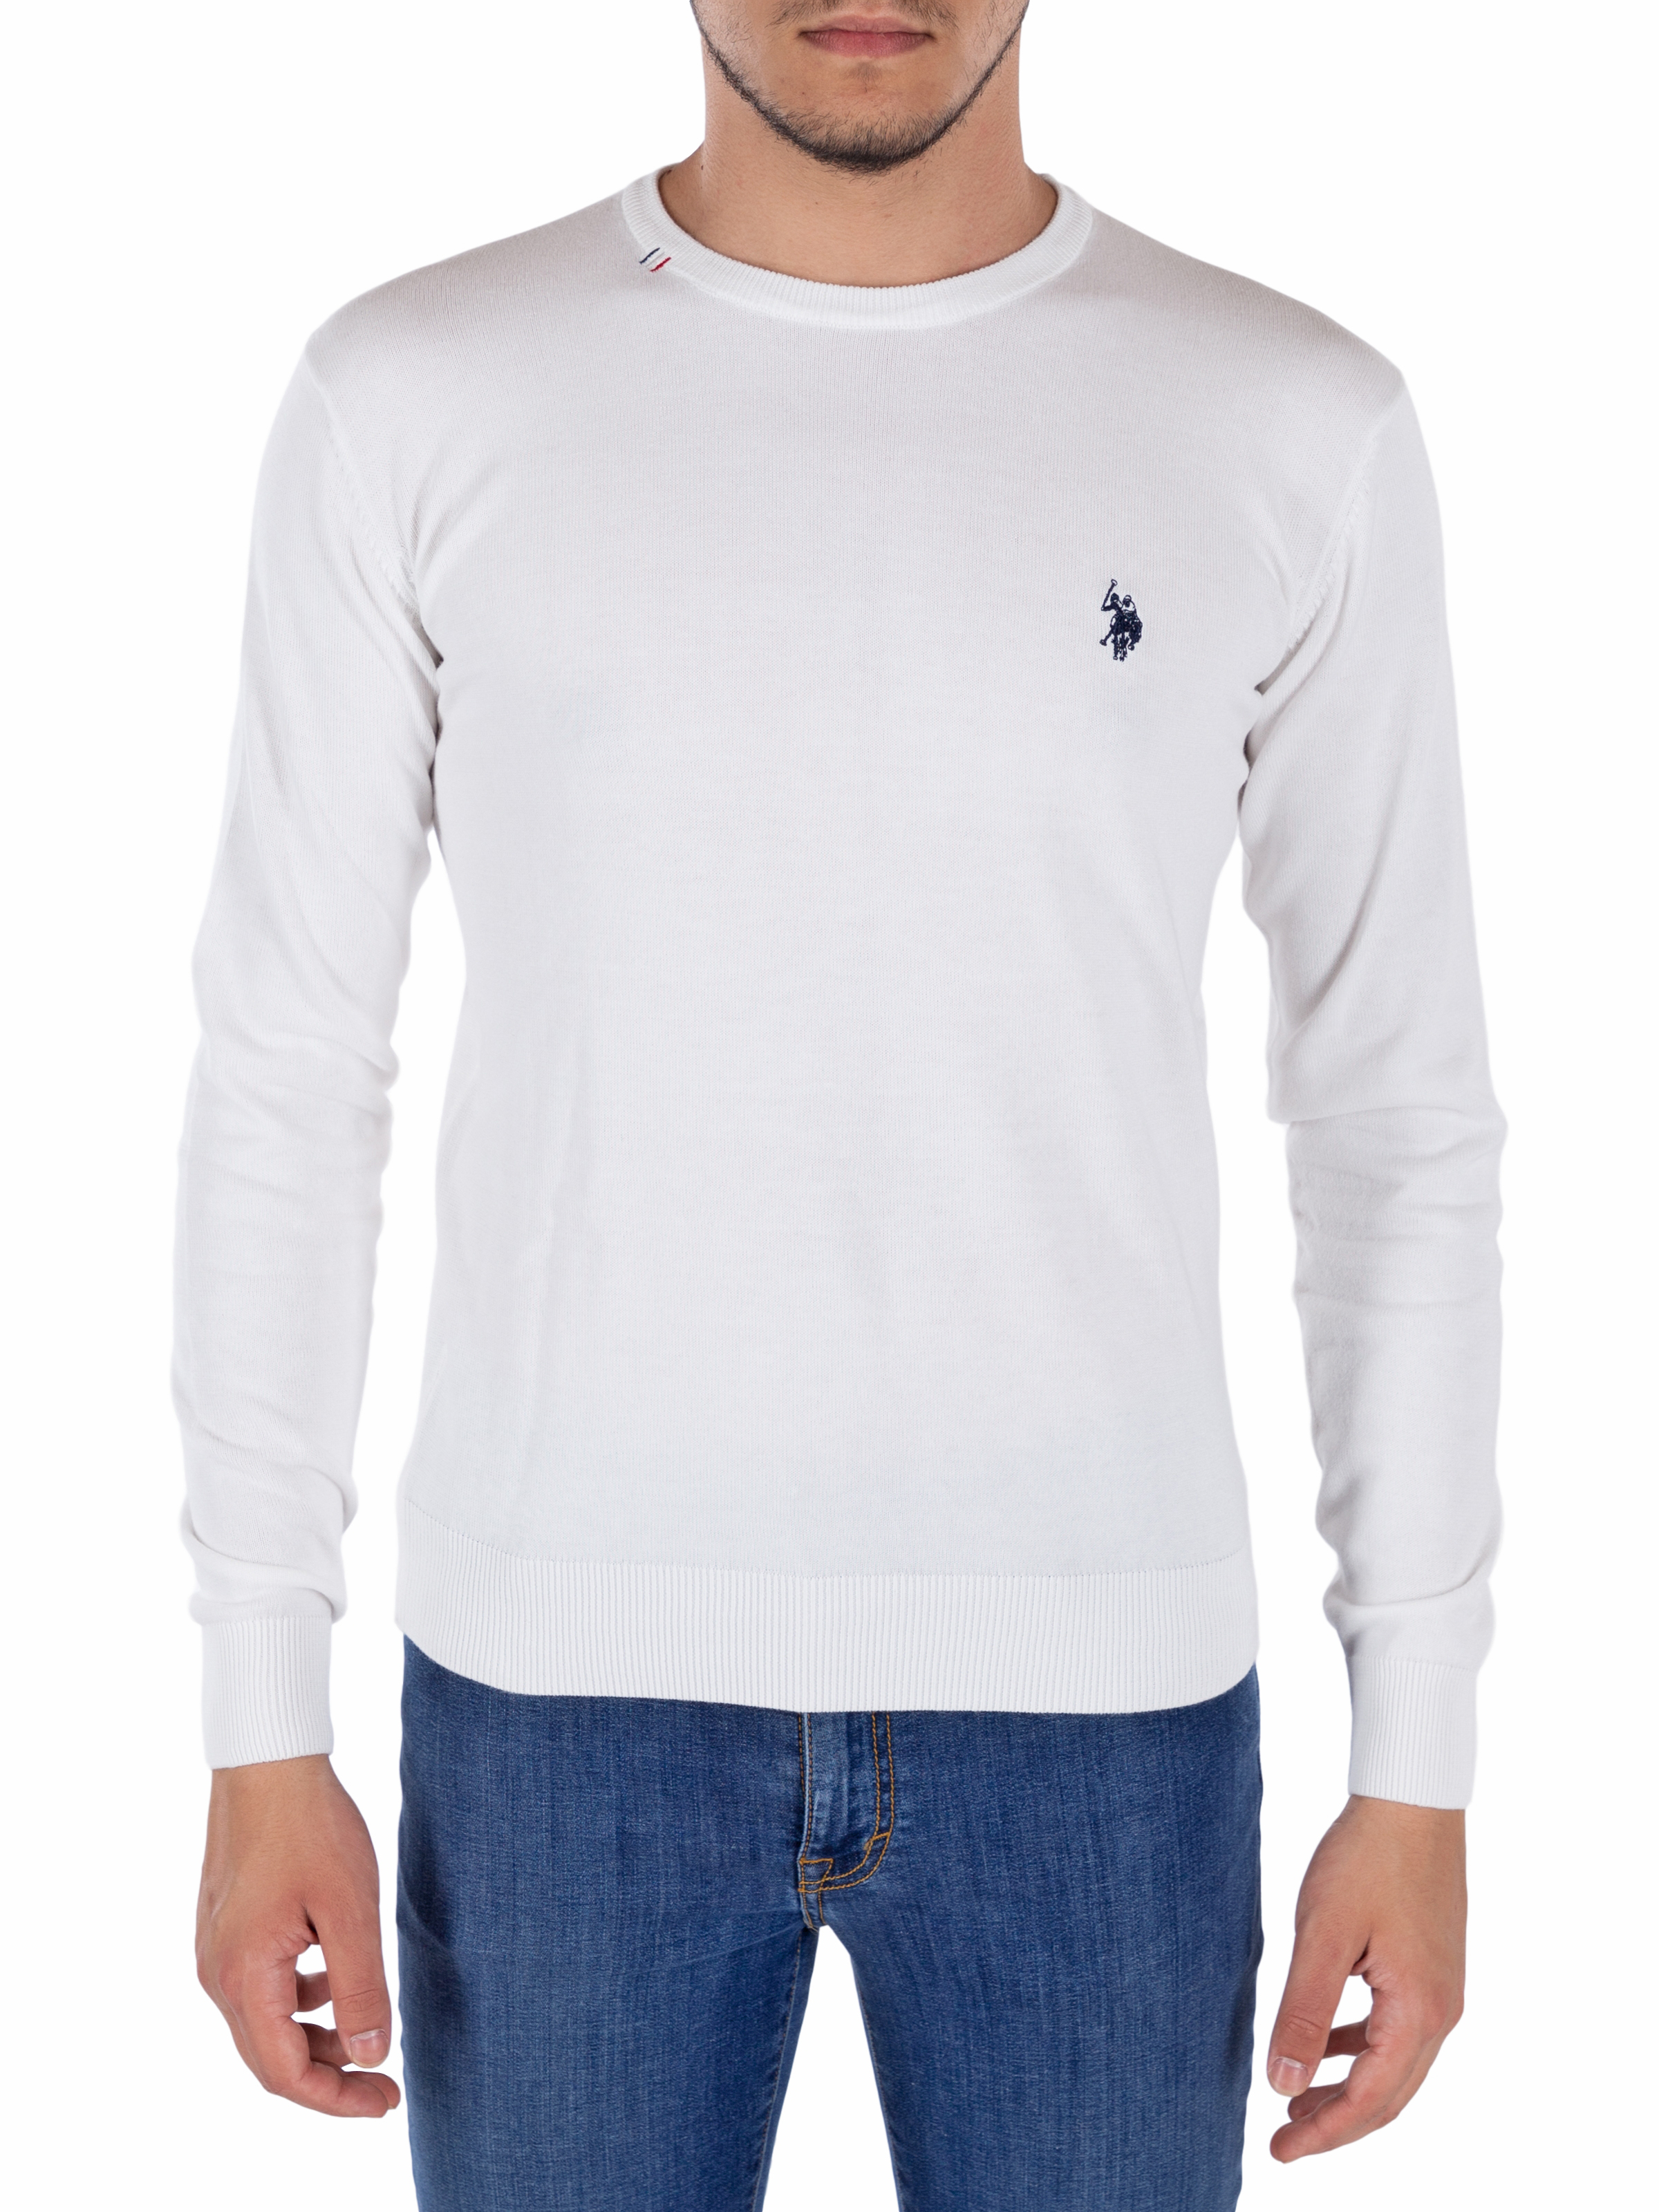 U.S.Polo Assn. Institution Knit 56489 51727